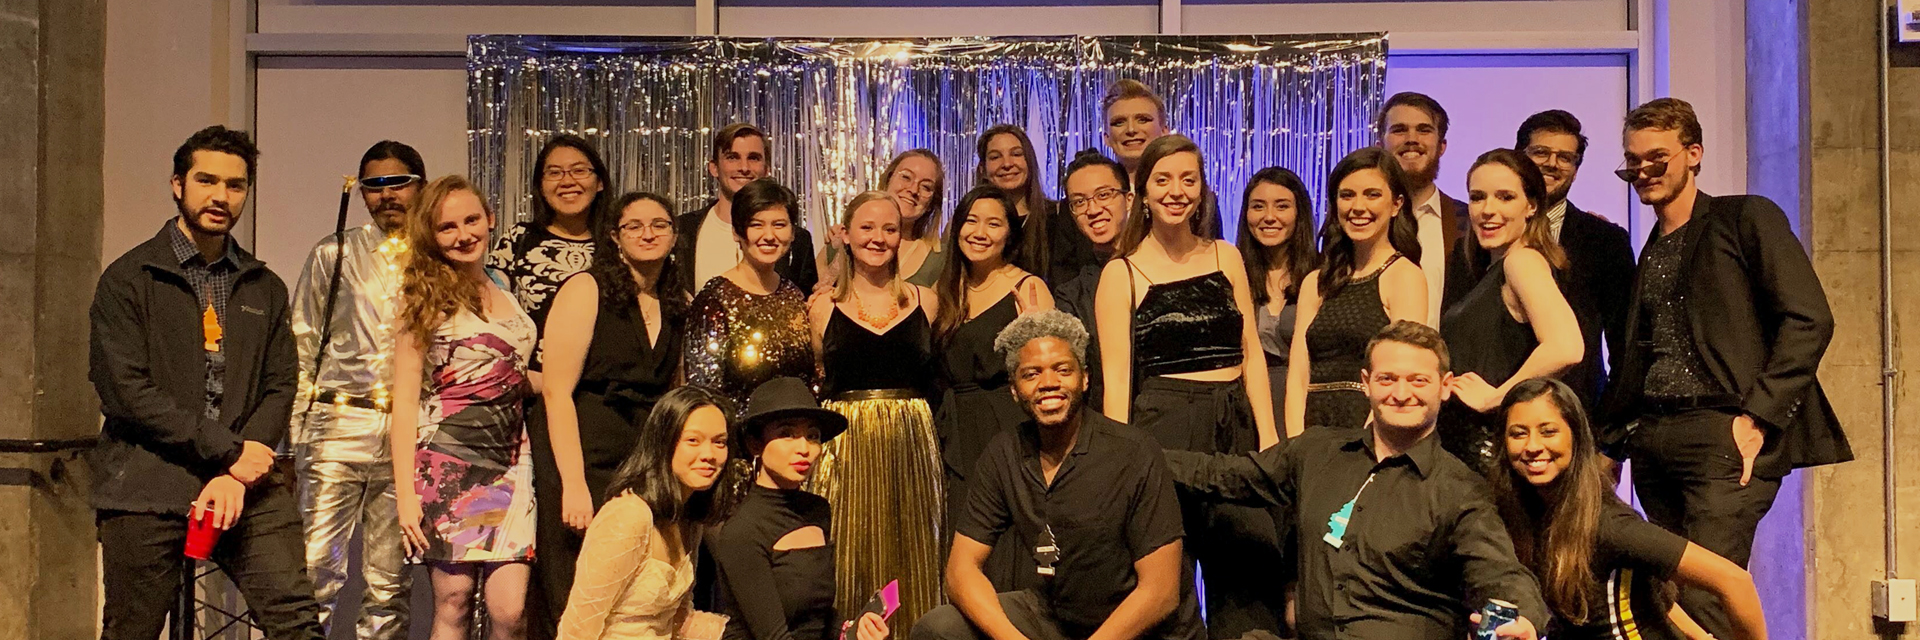 Group photo from the Fall 2019 Beaux Arts Ball